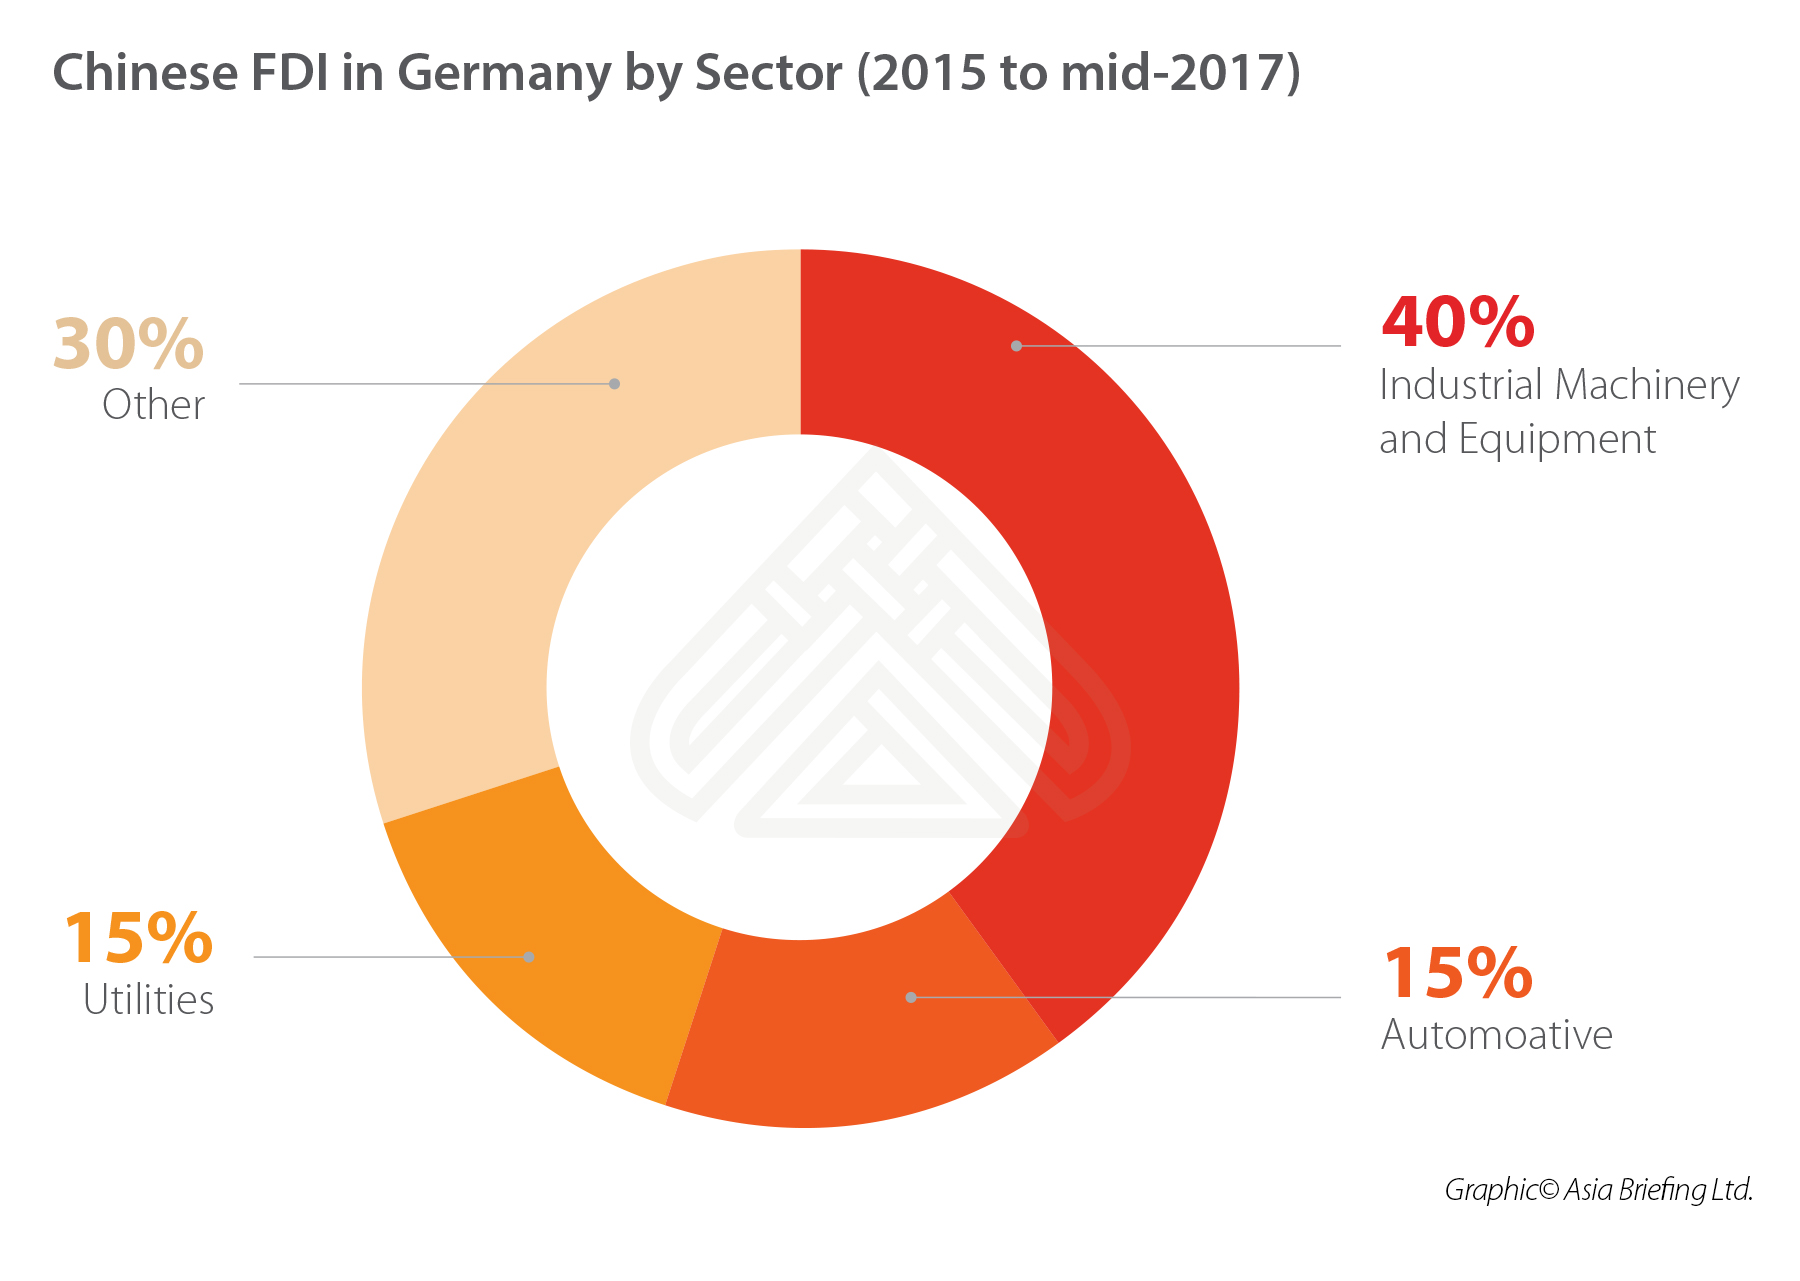 CHINA-FDI-GERMANY-SECTOR-WISE